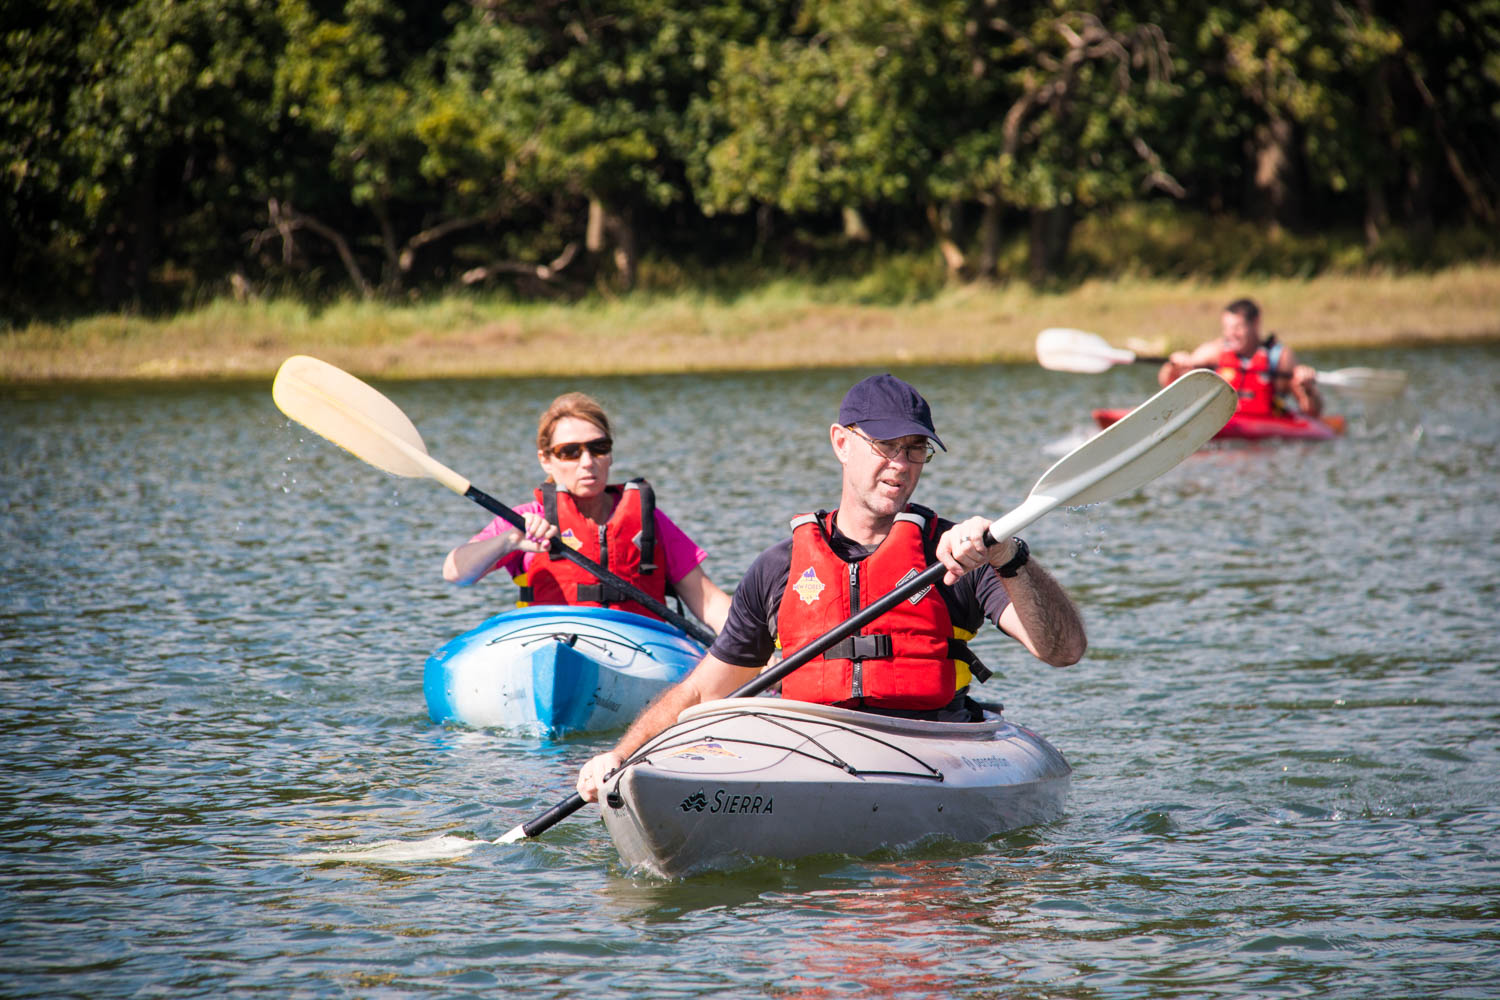 Kayaking is just one of the activities for couples that we offer.